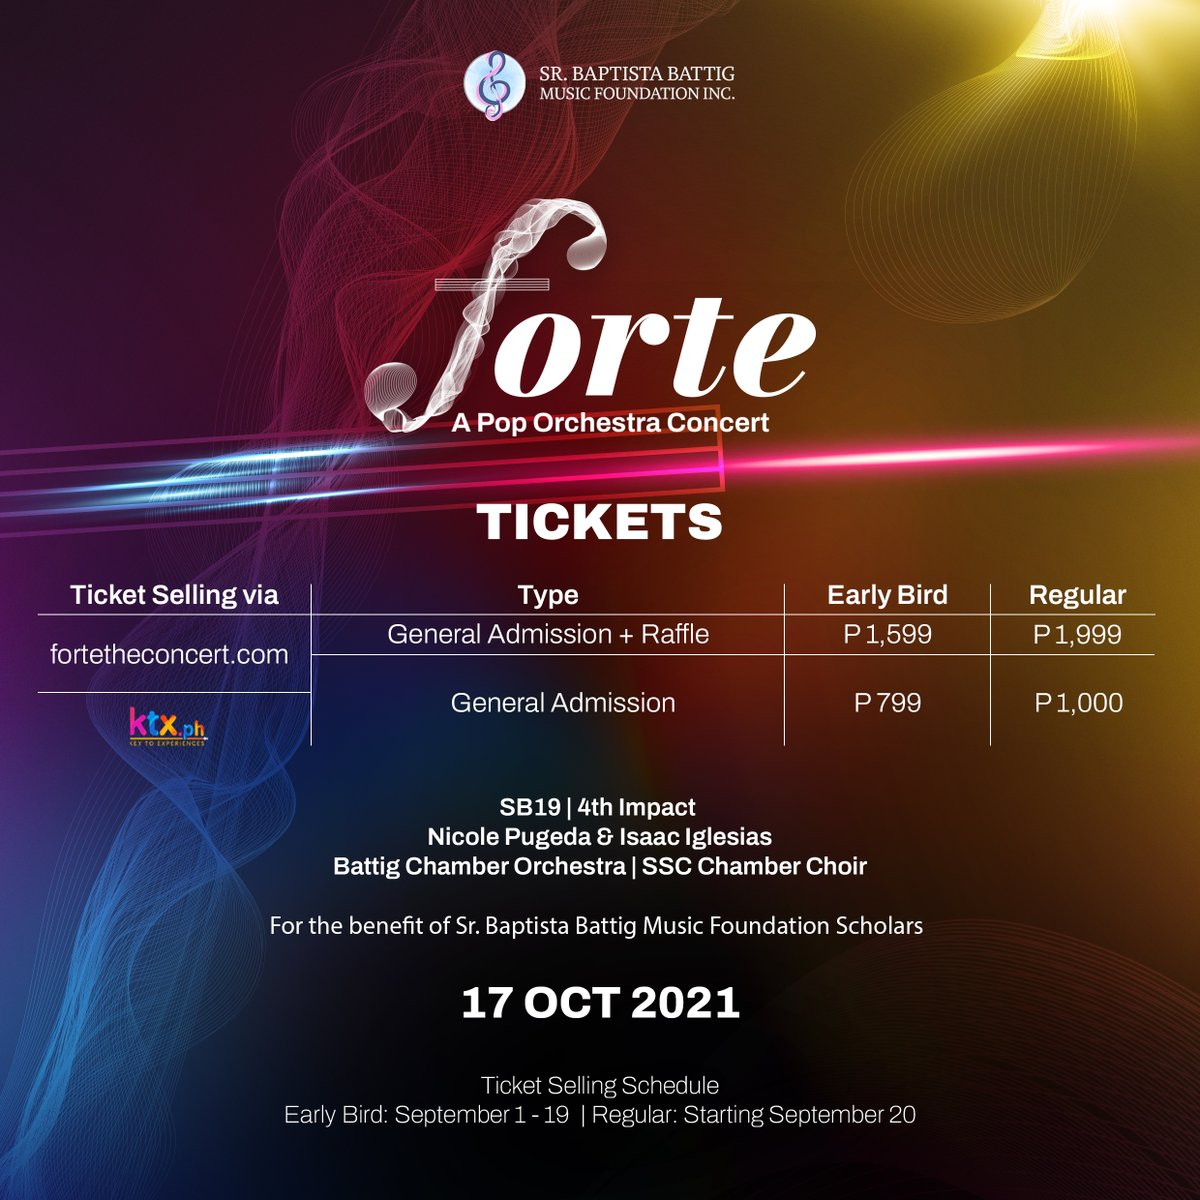 """SB19 Official 🇵🇭 on Twitter: """"Forte: A Pop Orchestra Concert tickets are  now available! Catch us perform our songs live with an orchestra for the  first time plus a special collaboration performance."""